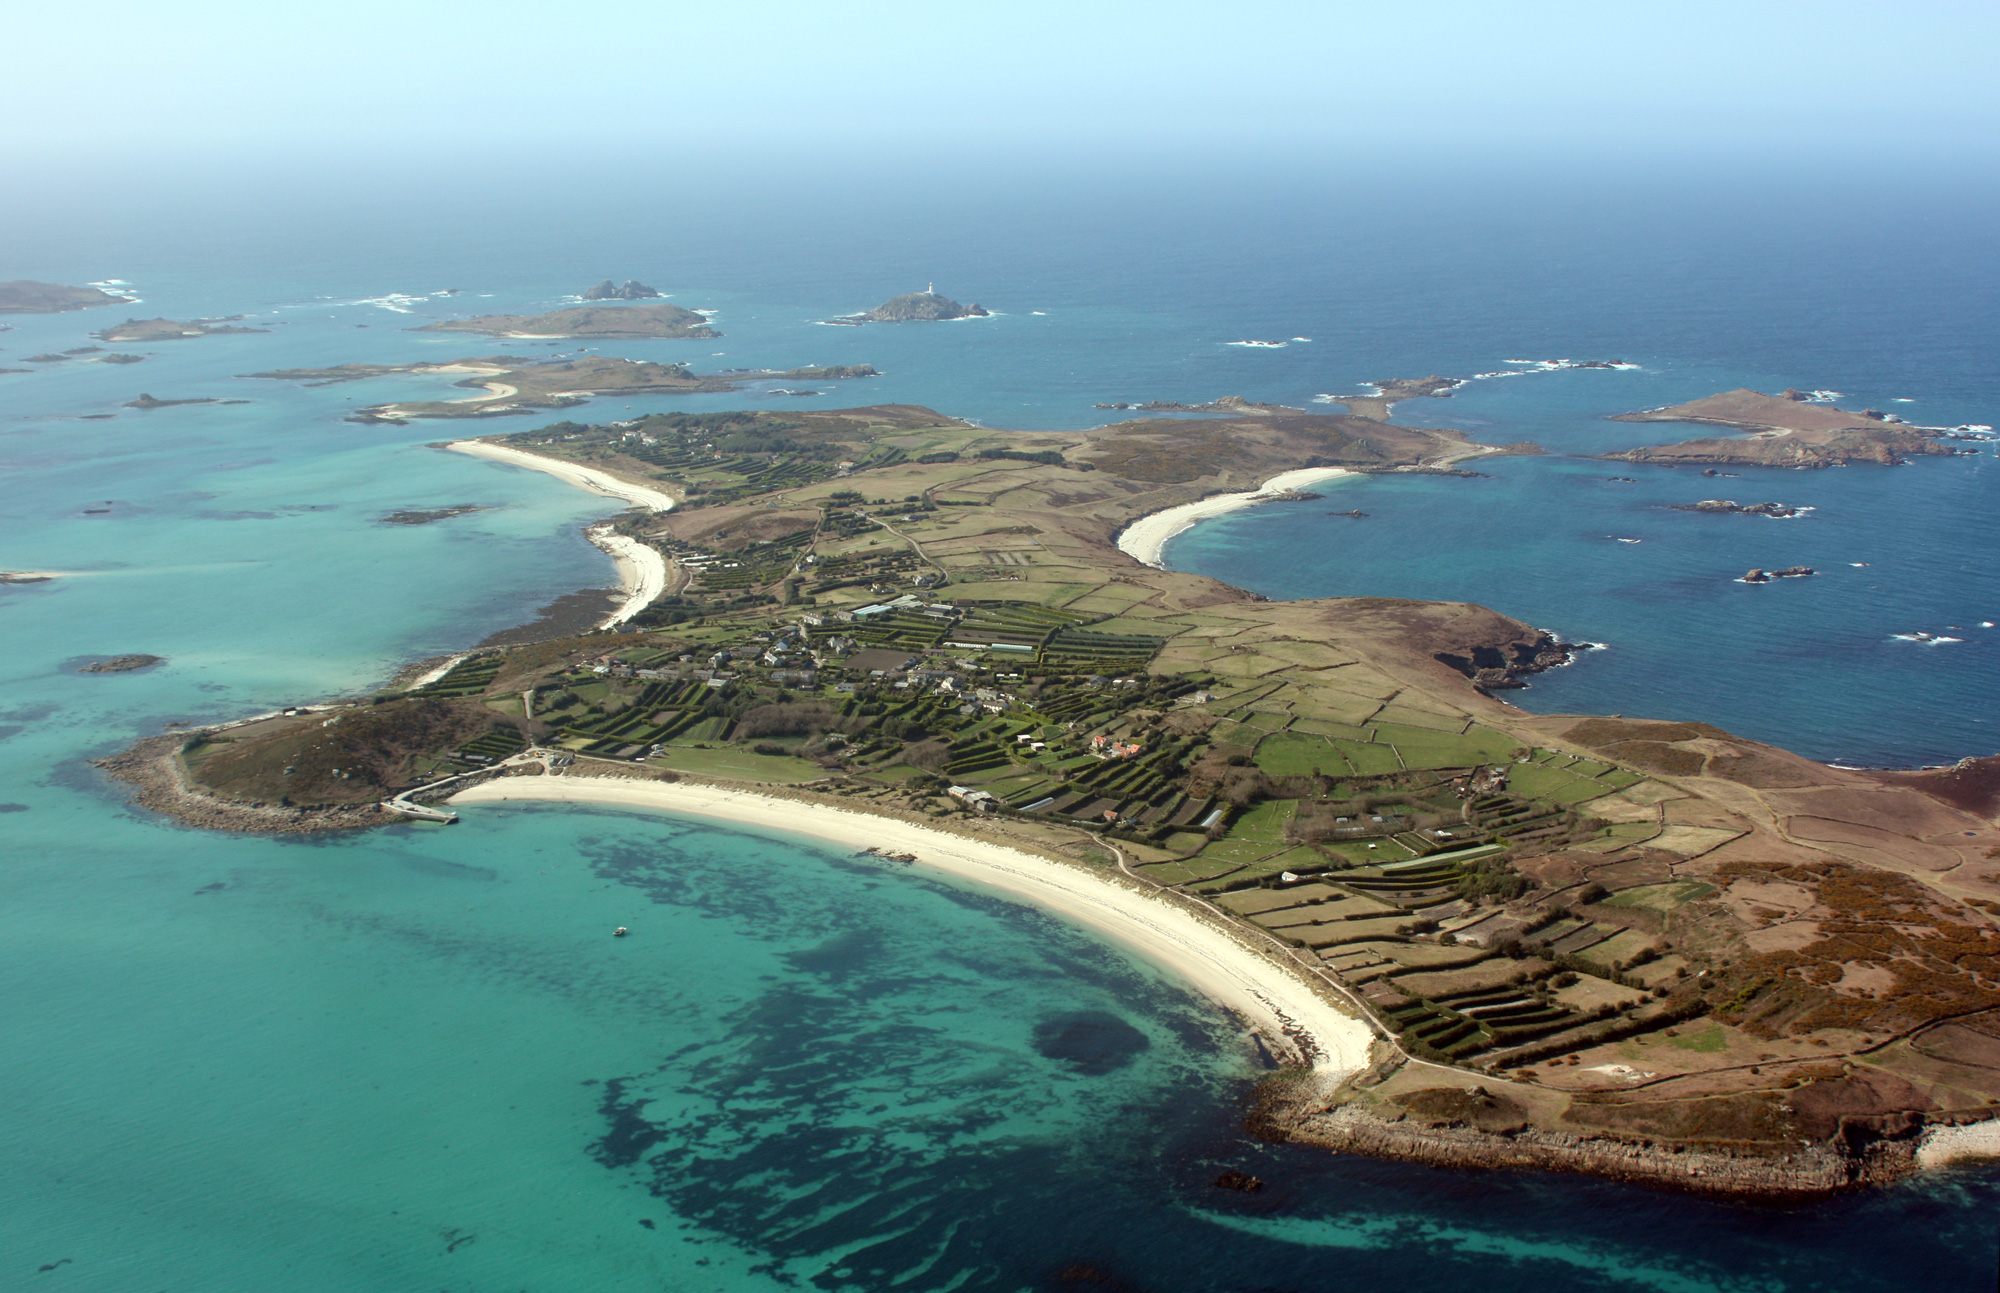 PassivSystems to deploy cloud-based energy management systems and renewable technologies on Isles of Scilly